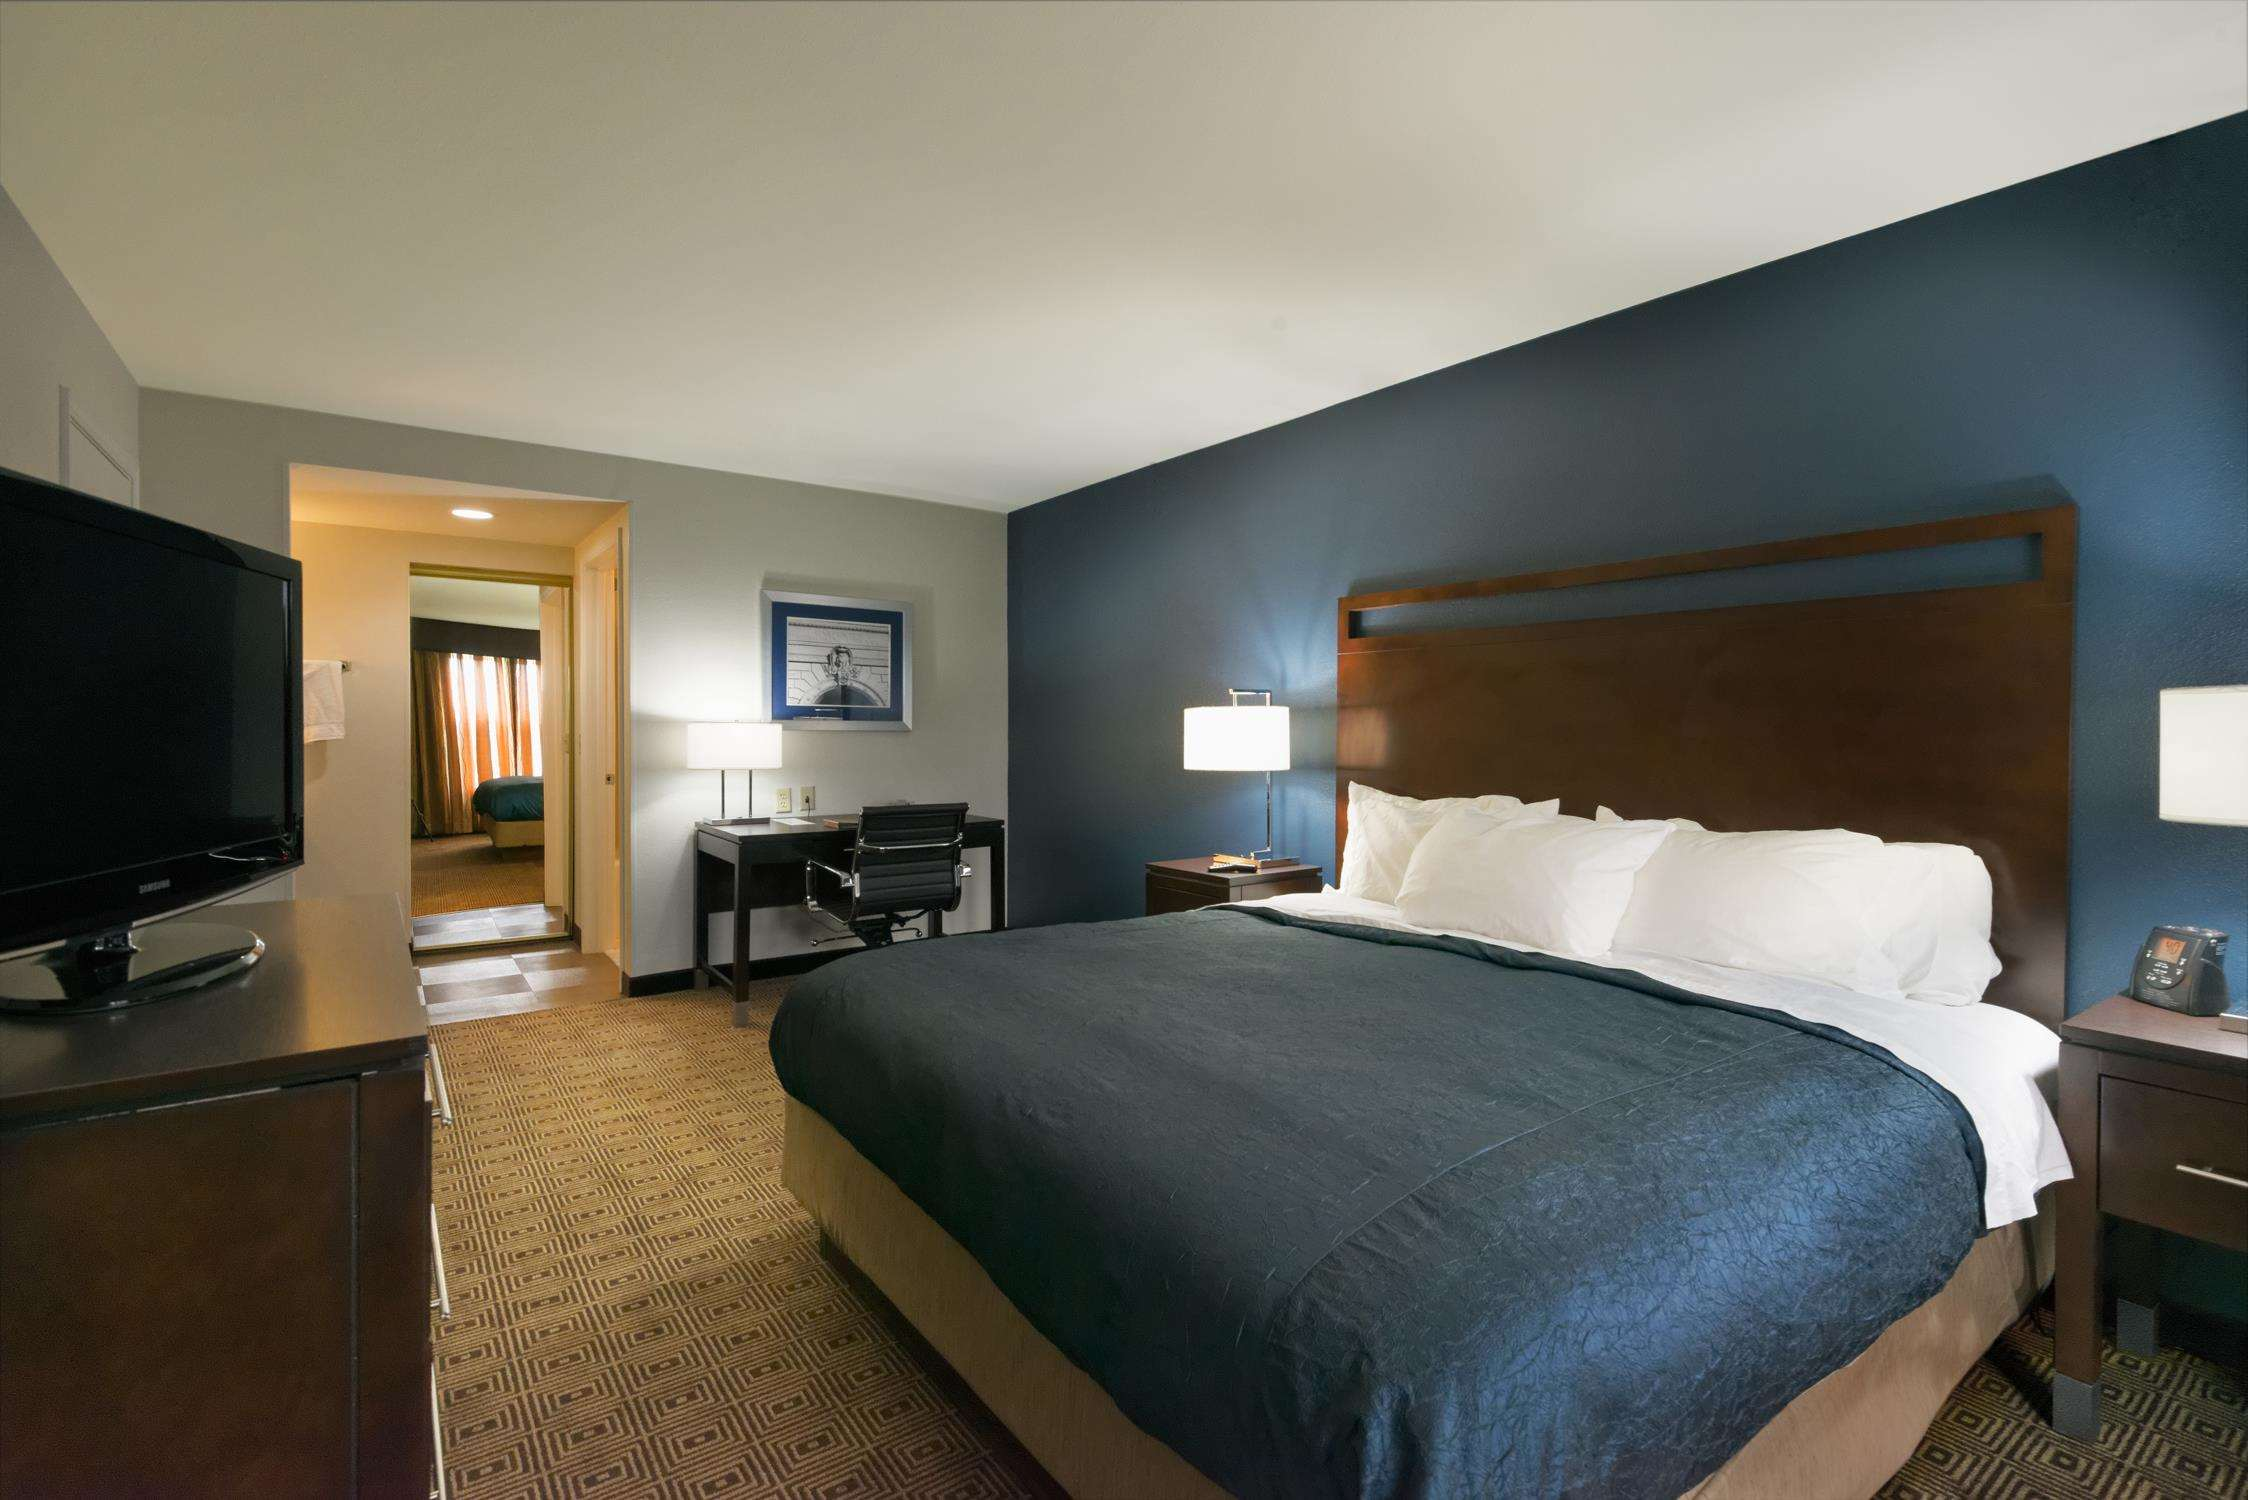 Homewood Suites by Hilton Manchester/Airport image 10